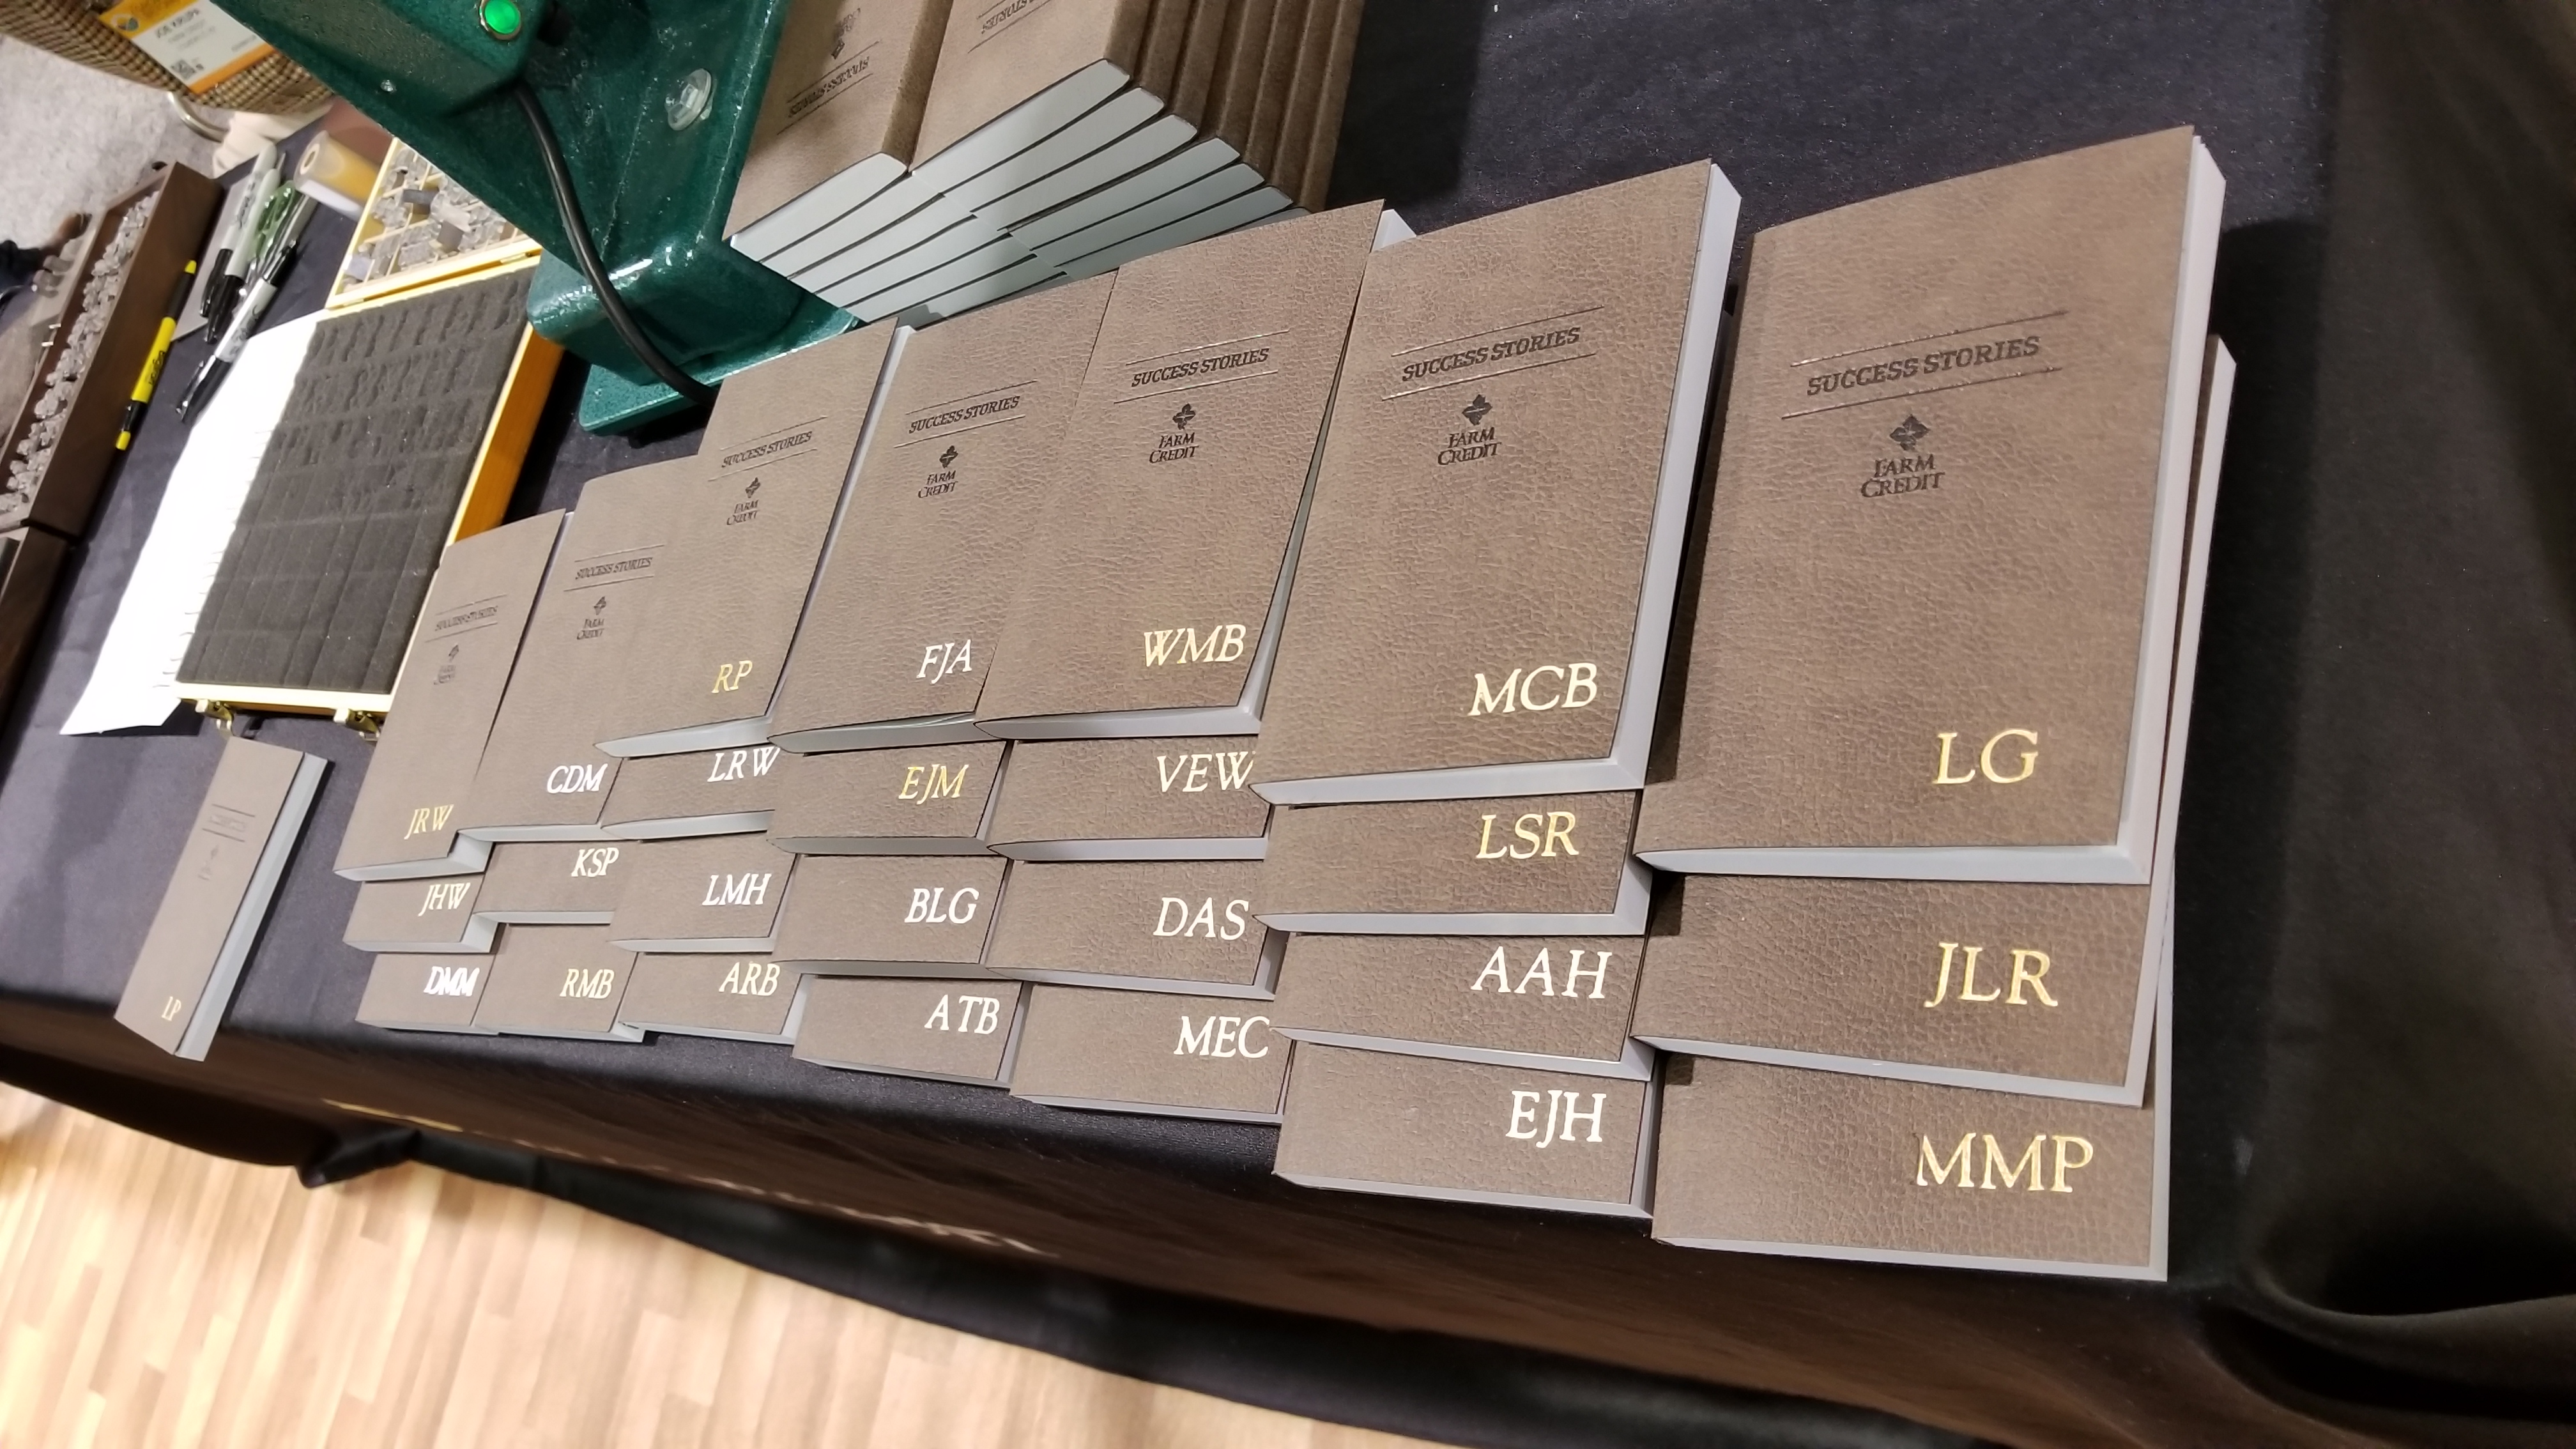 personalized journals most popular swag at commodity classic